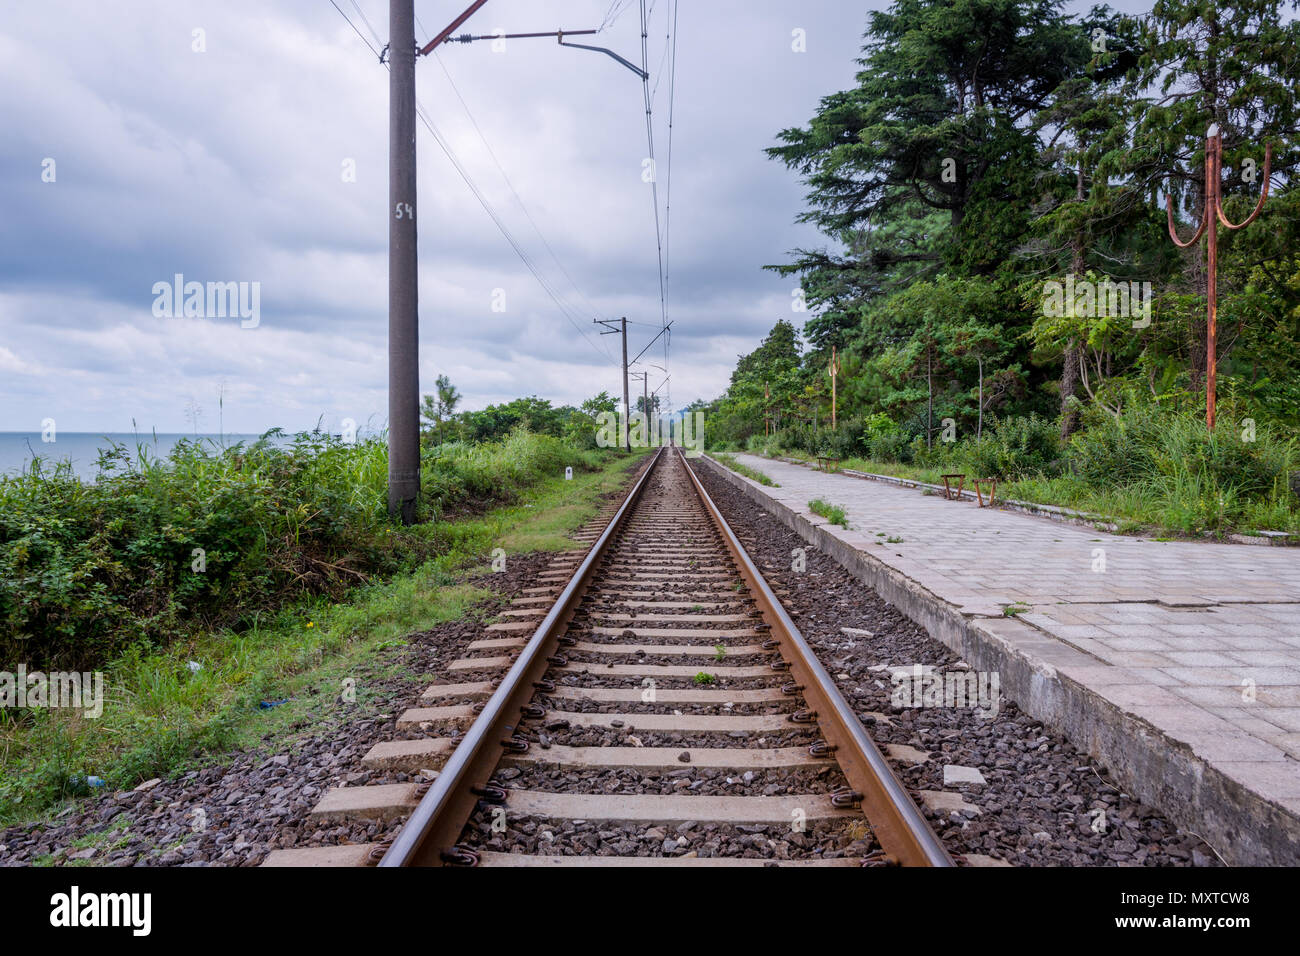 Railway and the platform, central perspective - Stock Image